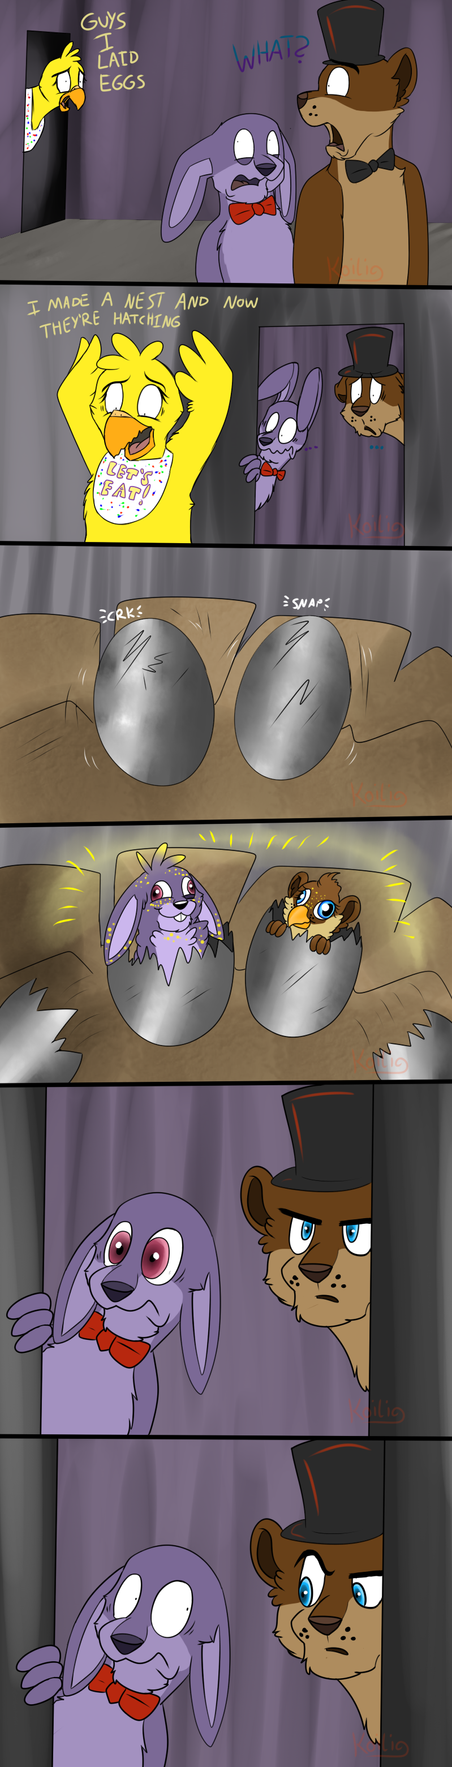 FNaF - Chica's Eggs by Koili